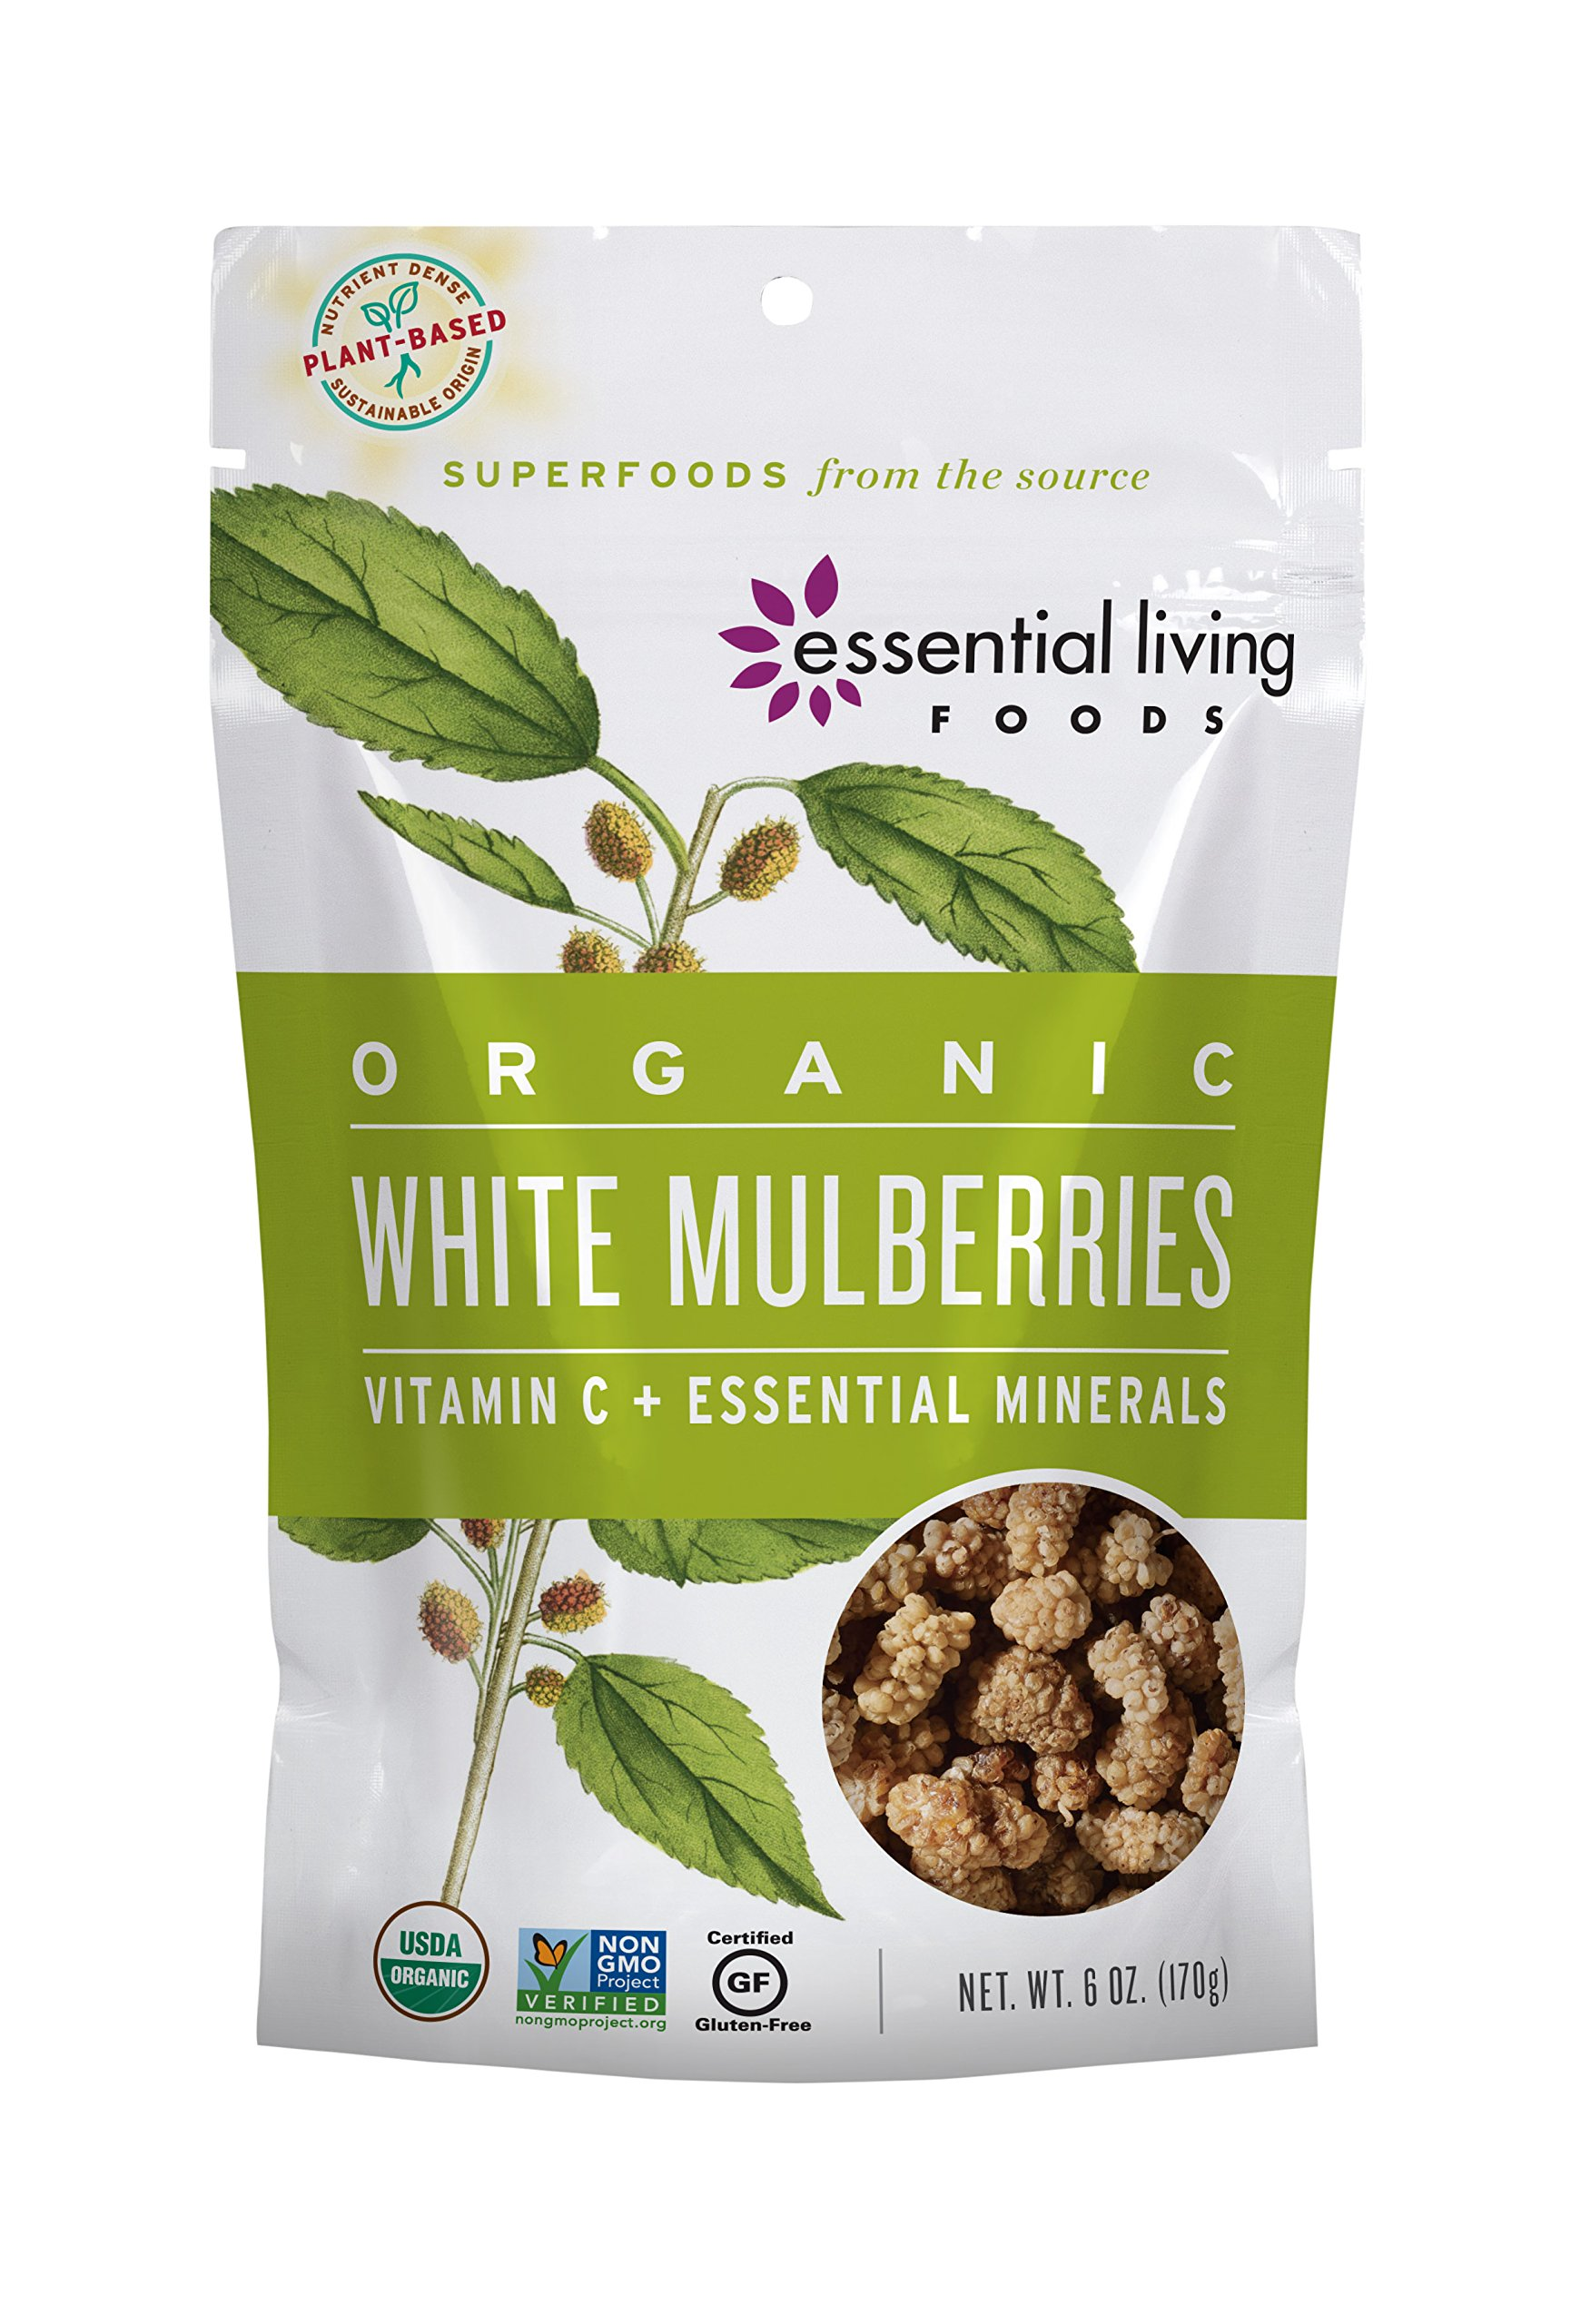 Essential Living Foods Organic White Mulberries, Sun Dried Highest Quality Mulberry, Vegan, Superfood, Non-GMO, Gluten-Free, 6 Ounce Resealable Bag